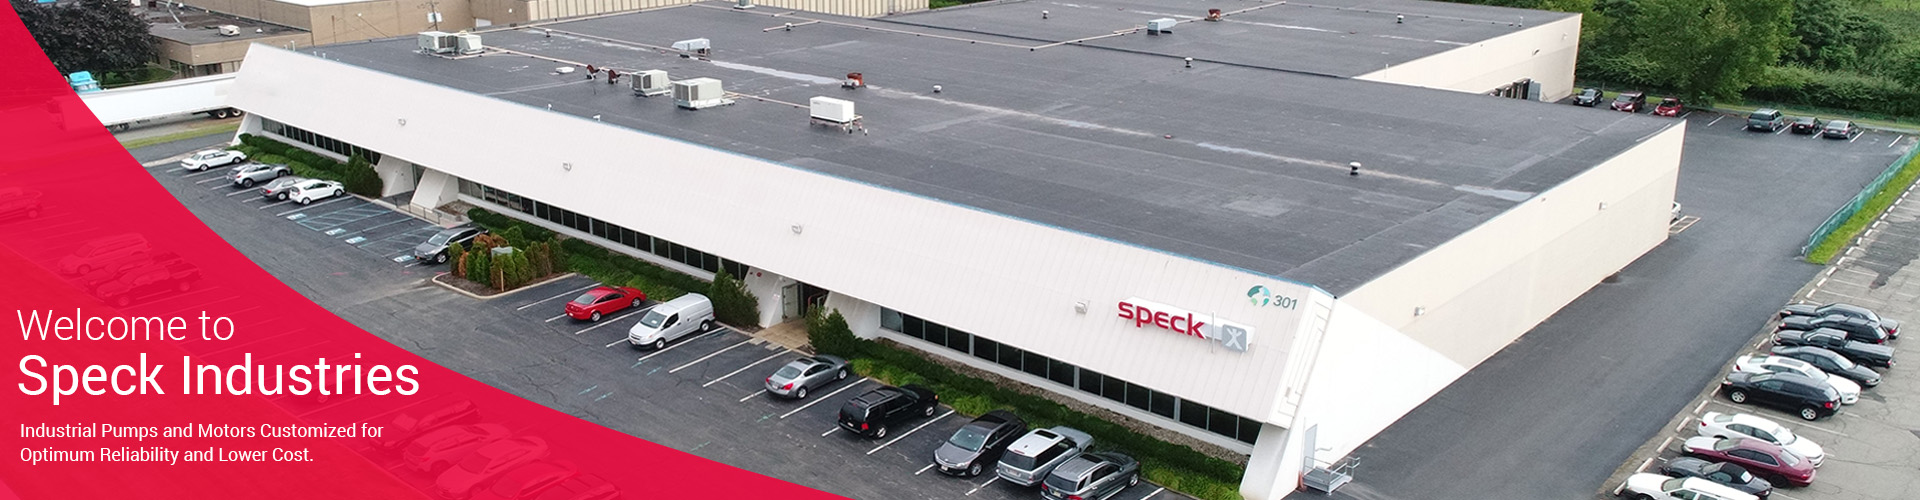 Speck Industries New Jersey Plant